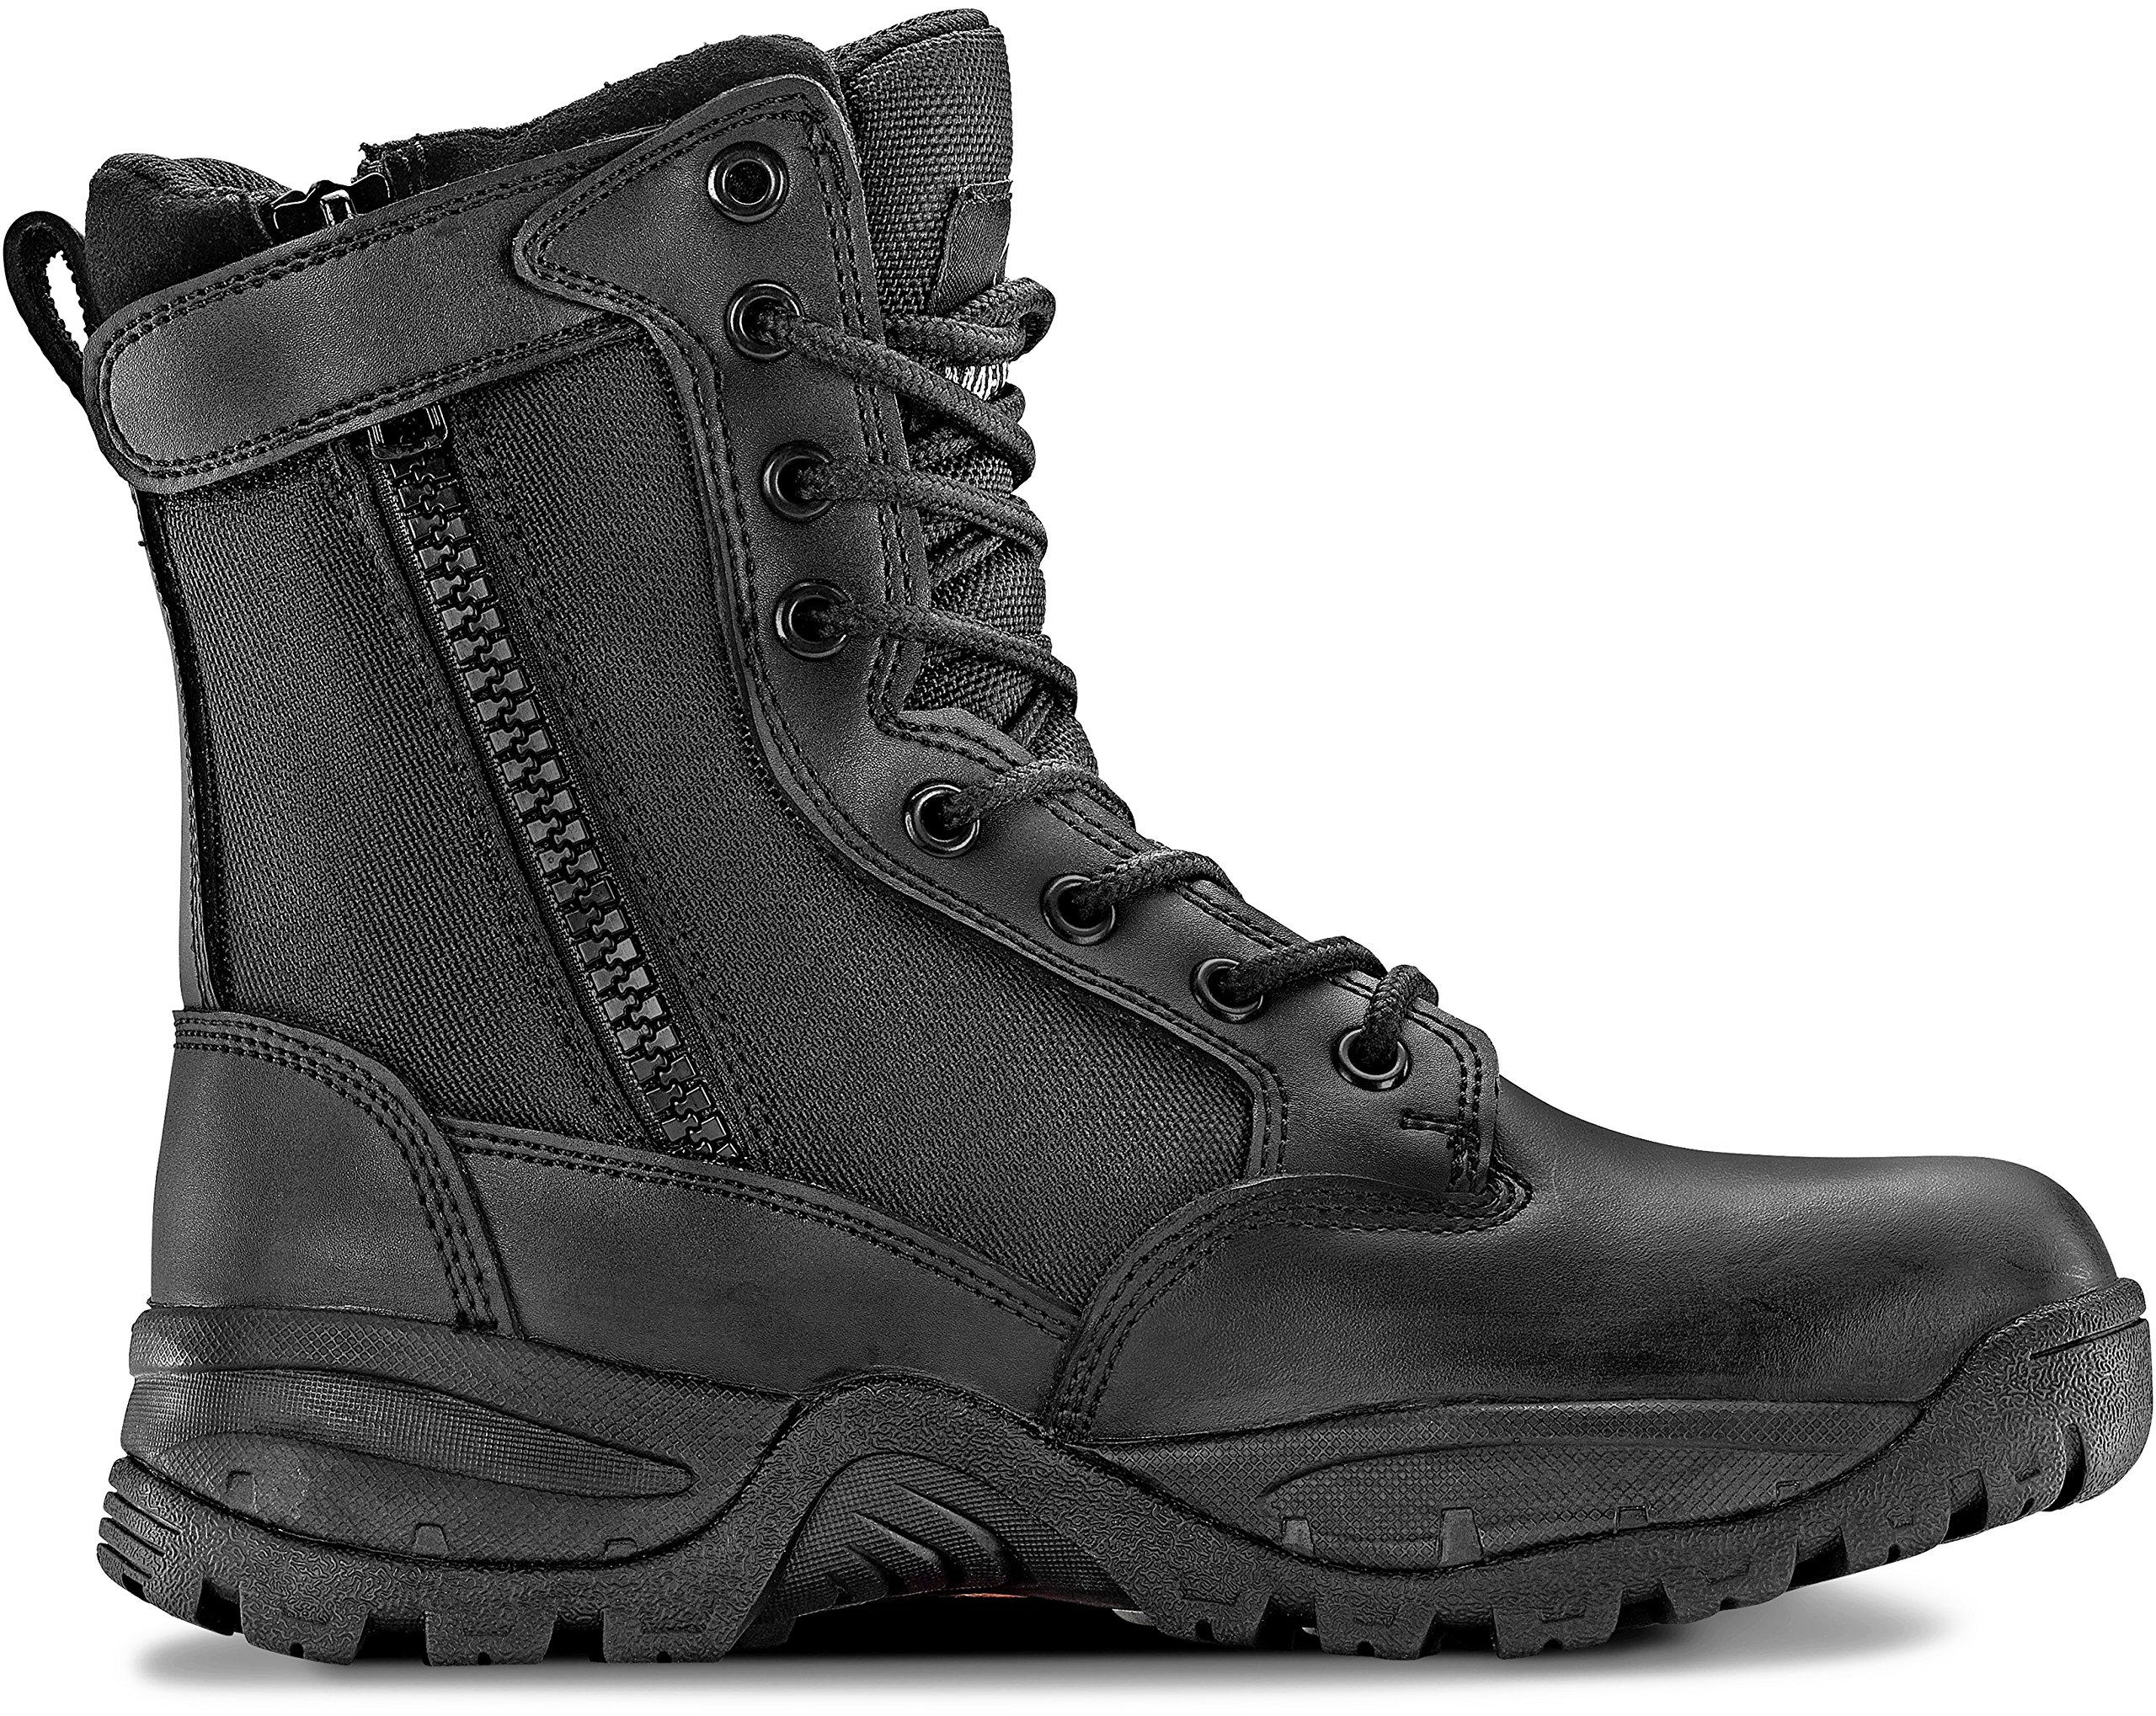 Maelstrom Women's TAC Force 8 inch Military Tactical Duty Work Boot with Zipper, Black, 8 M US